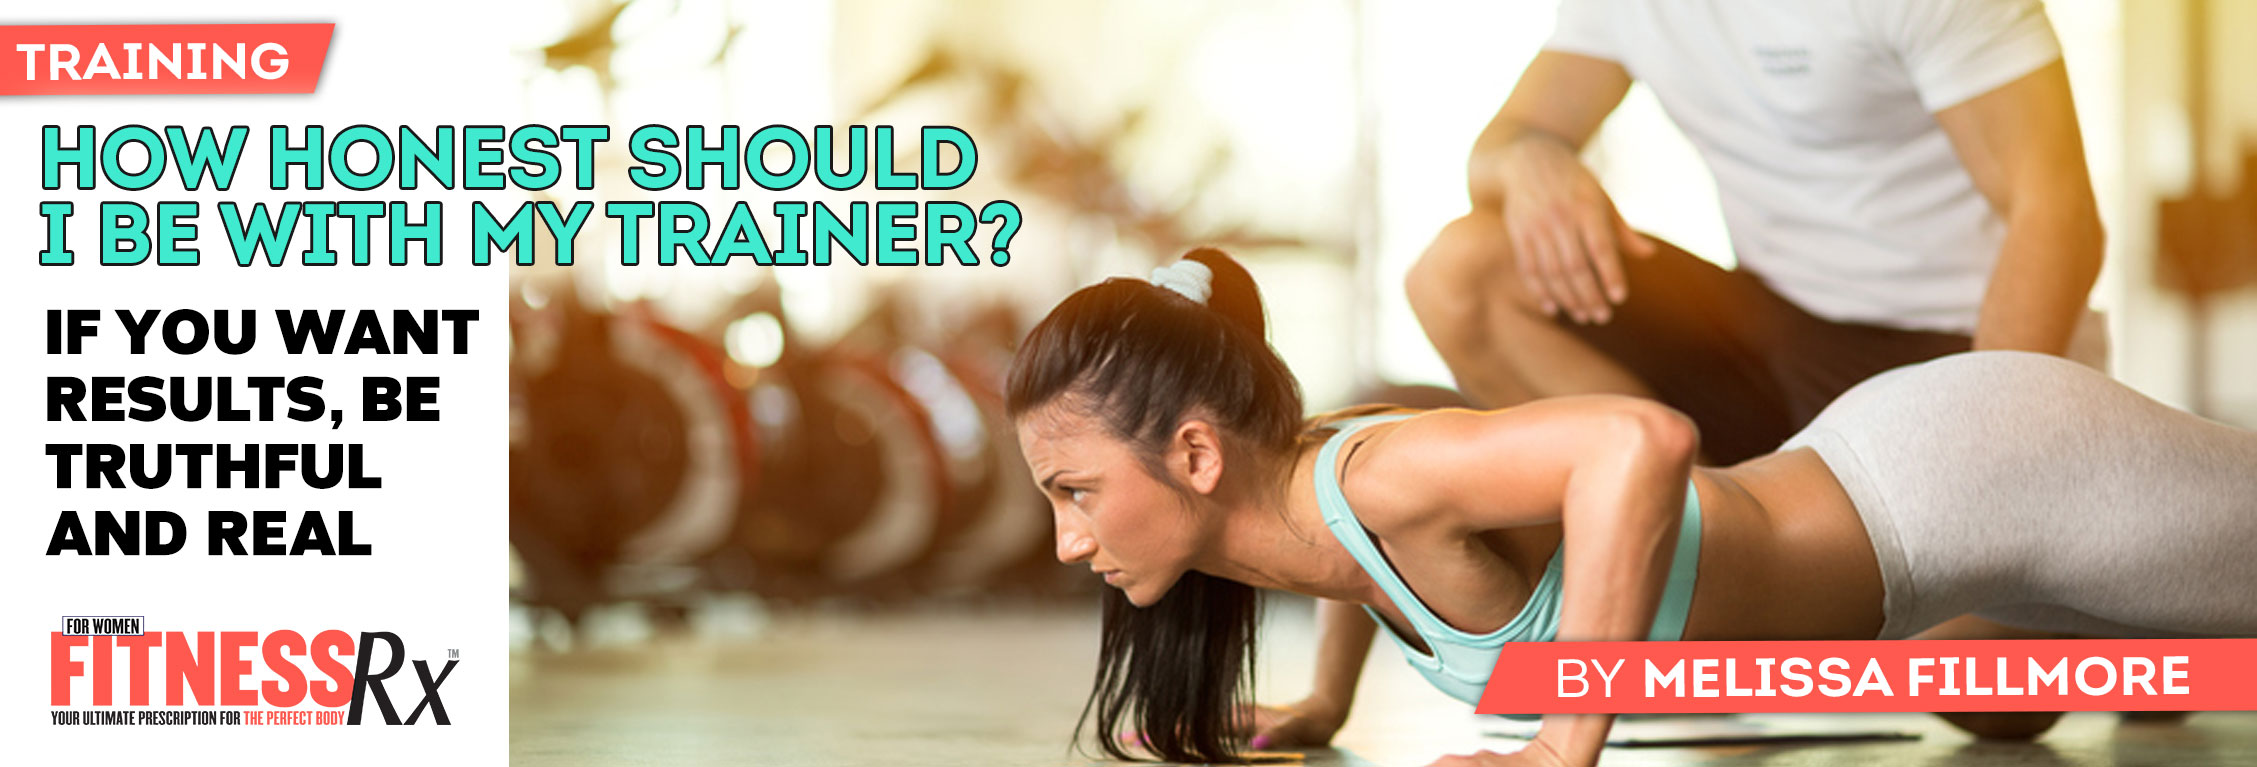 How Honest Should I Be With My Trainer? If You Want Results, Be Truthful and Real